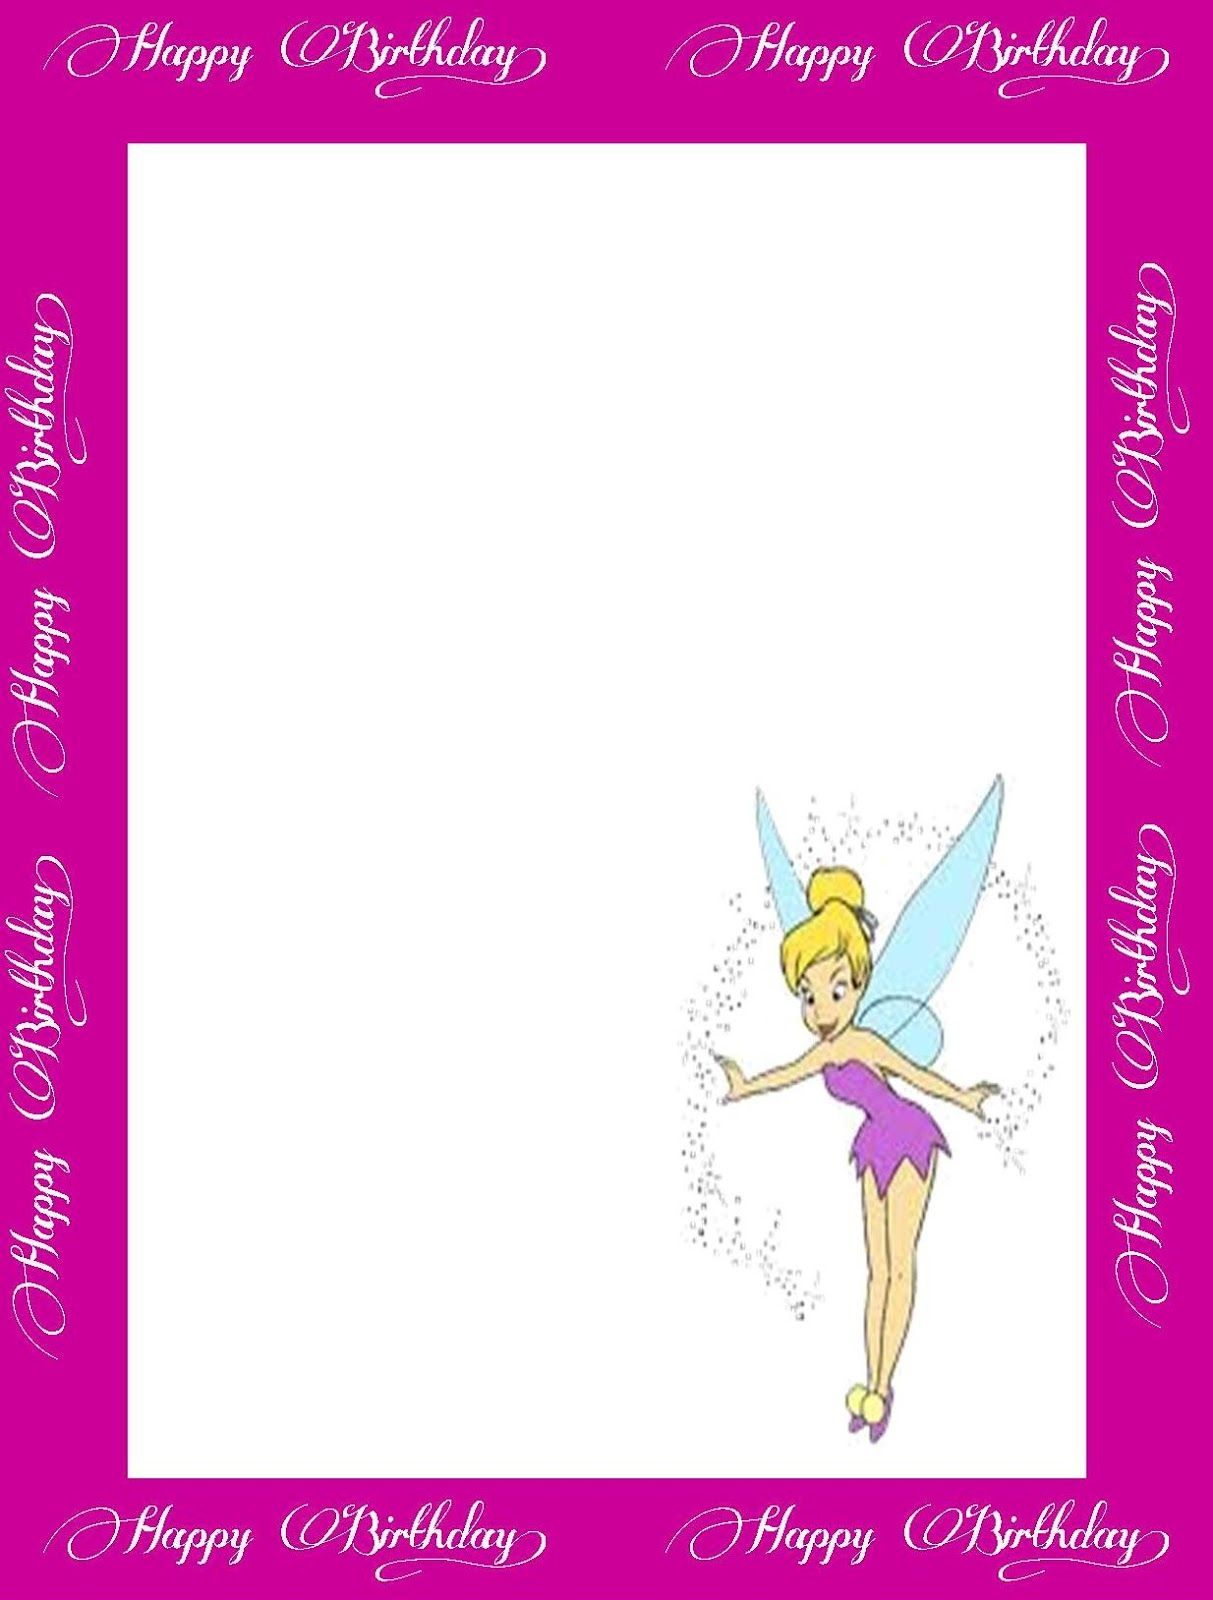 Pink Birthday Card Page Border Design